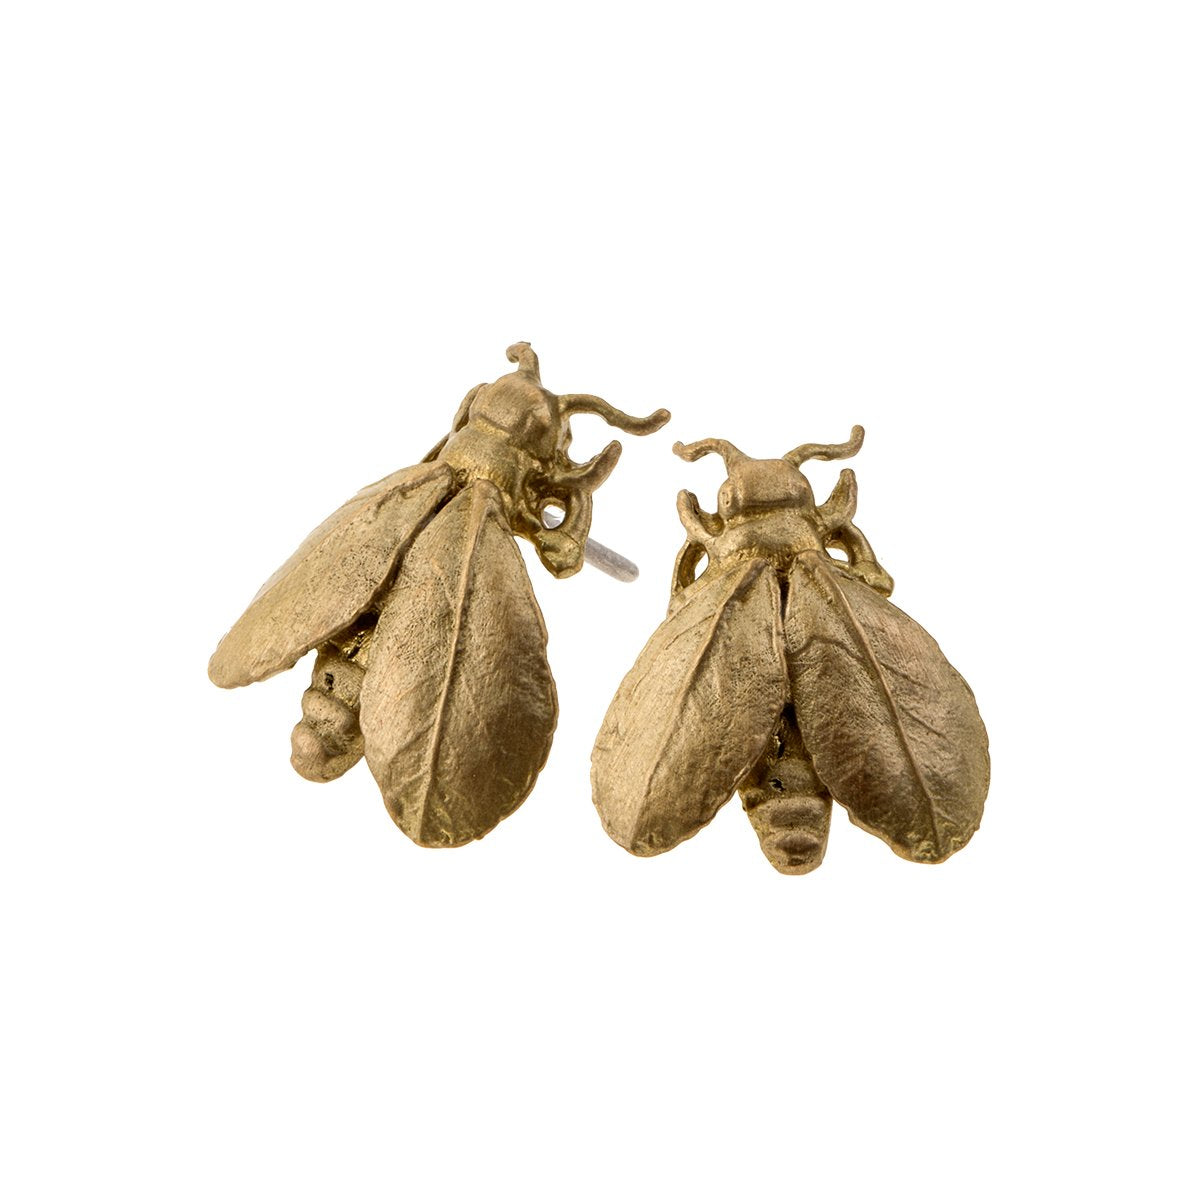 Earrings from Bery collection - BEK21-8